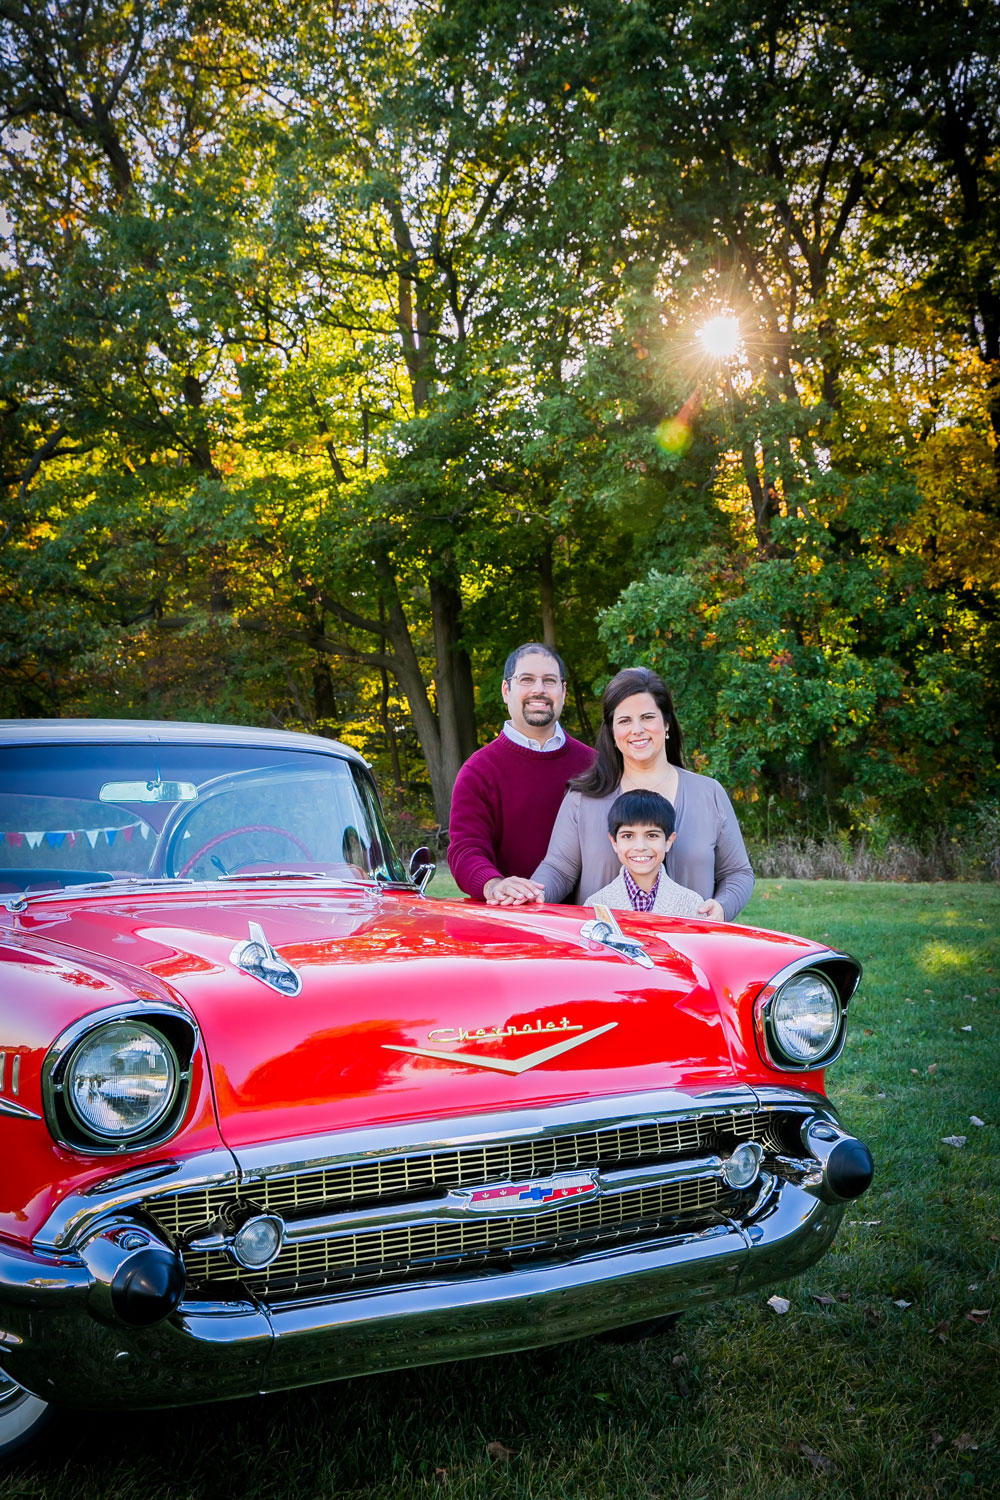 Ryan Gertner spent his whole life on the trail of a red '57 Chevy to call his own. His find is everything he'd hoped it would be.